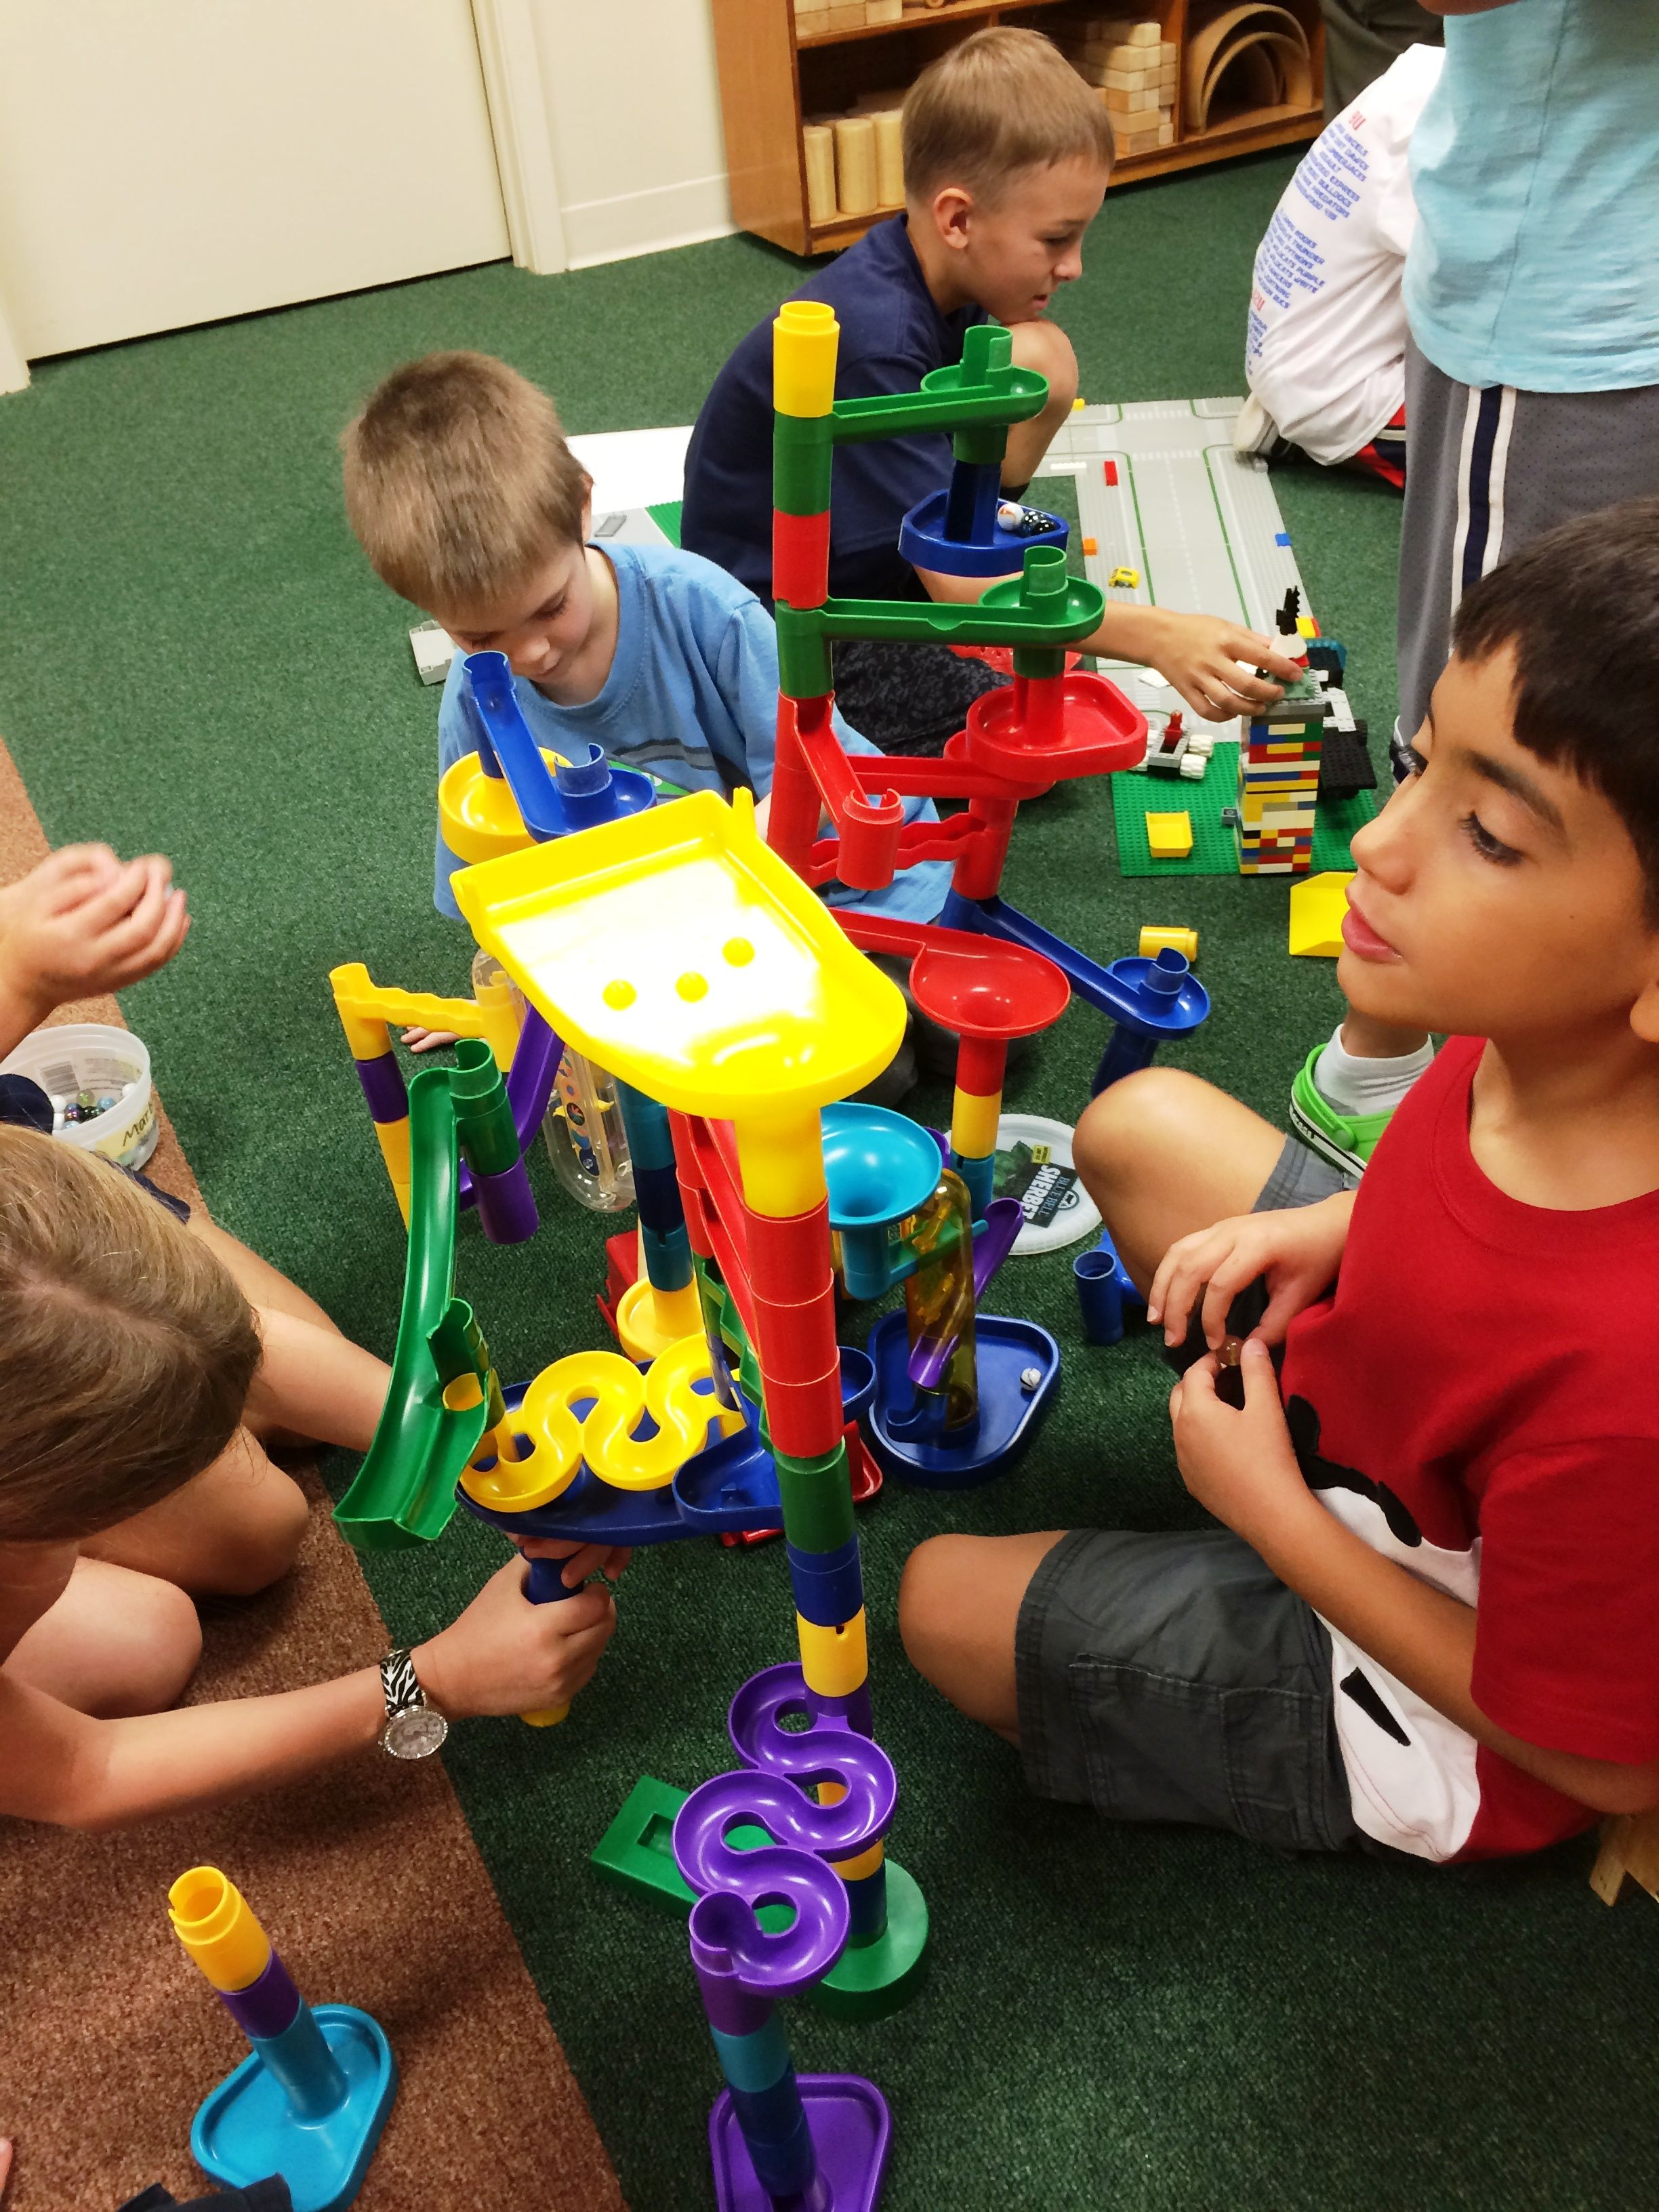 Building marble towers https://www.facebook.com/shadyoakprimary